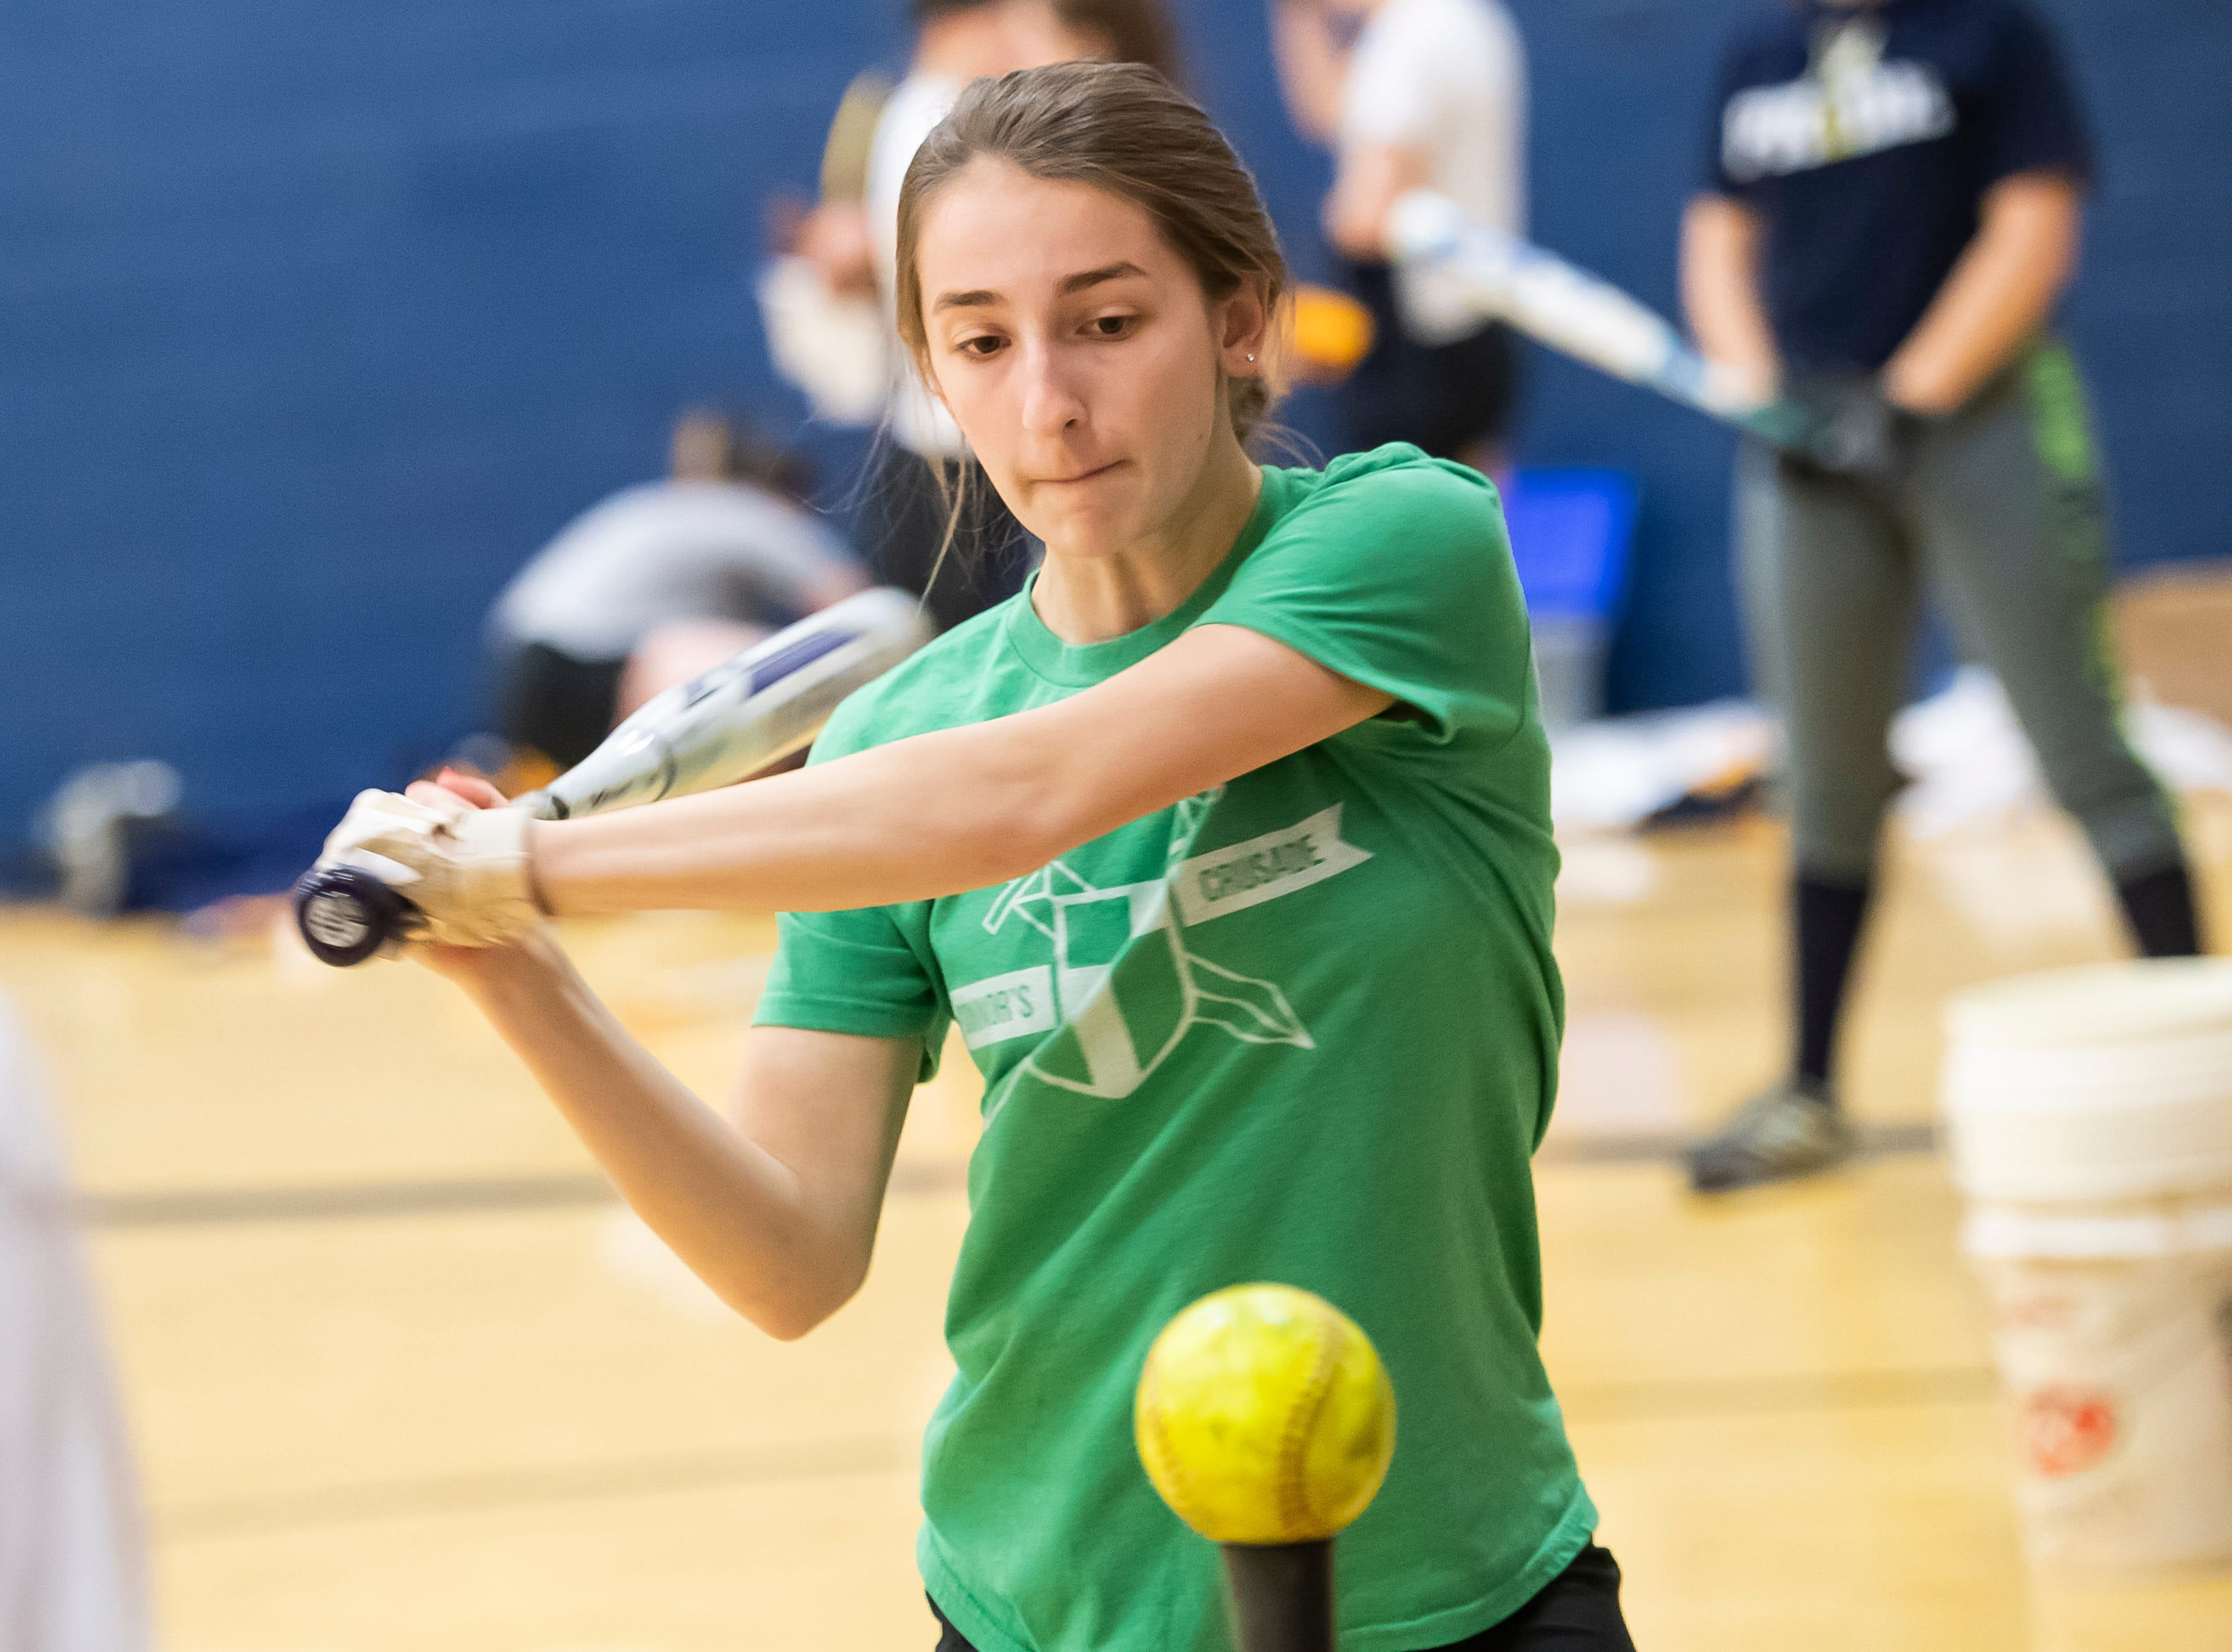 Littlestown's Hayli Hartlaub prepares to hit a softball off a tee during the first day of spring sports practice in the Littlestown High School gym Monday, March 4, 2019.